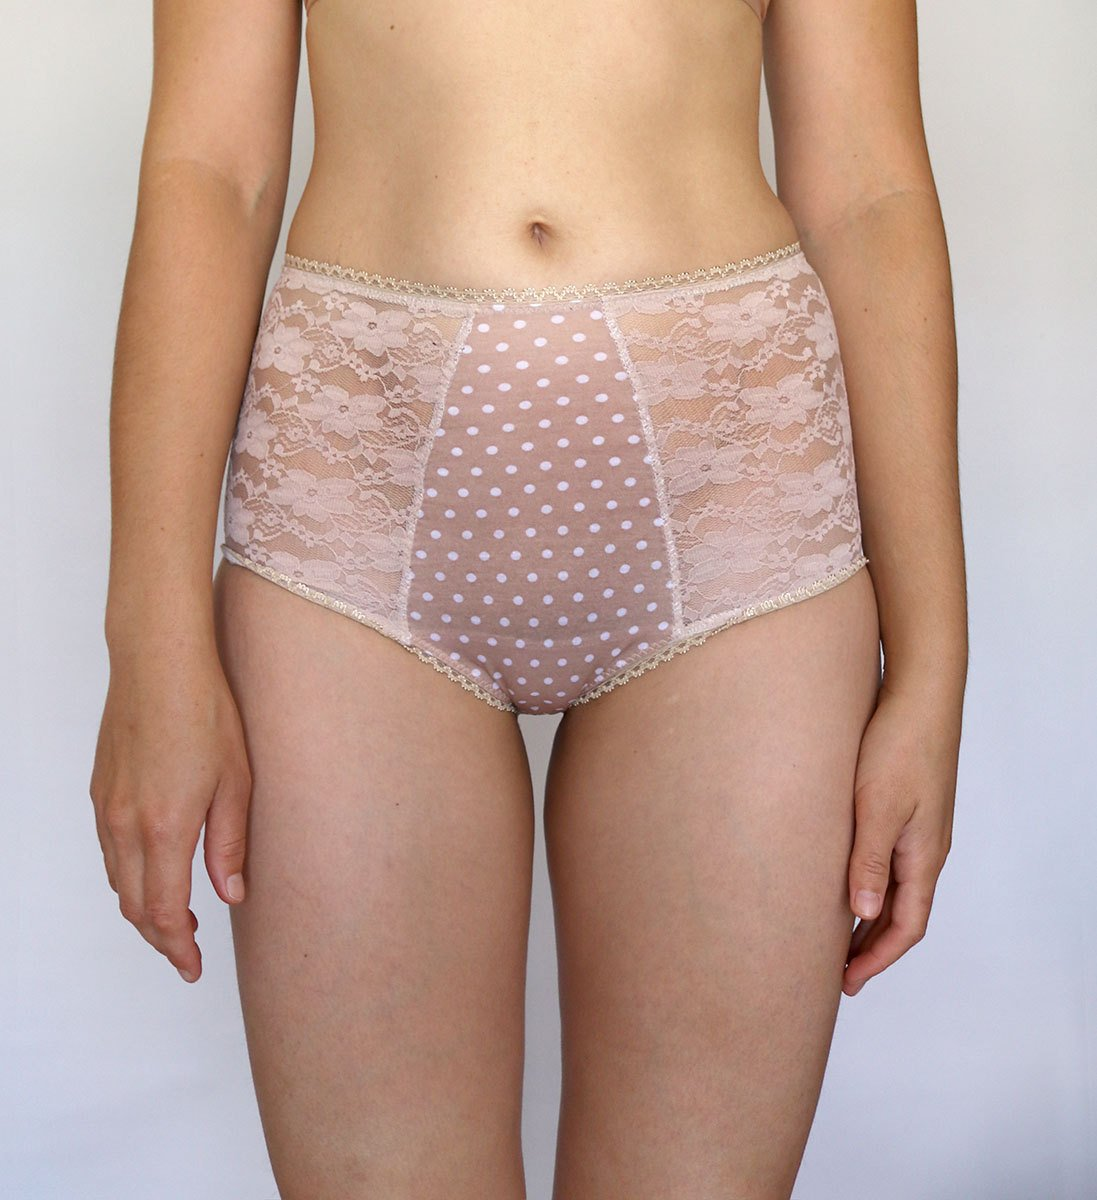 High Waist Panties. Dotted Beige Cotton Blend and Lace Inserts. Handmade Lingerie